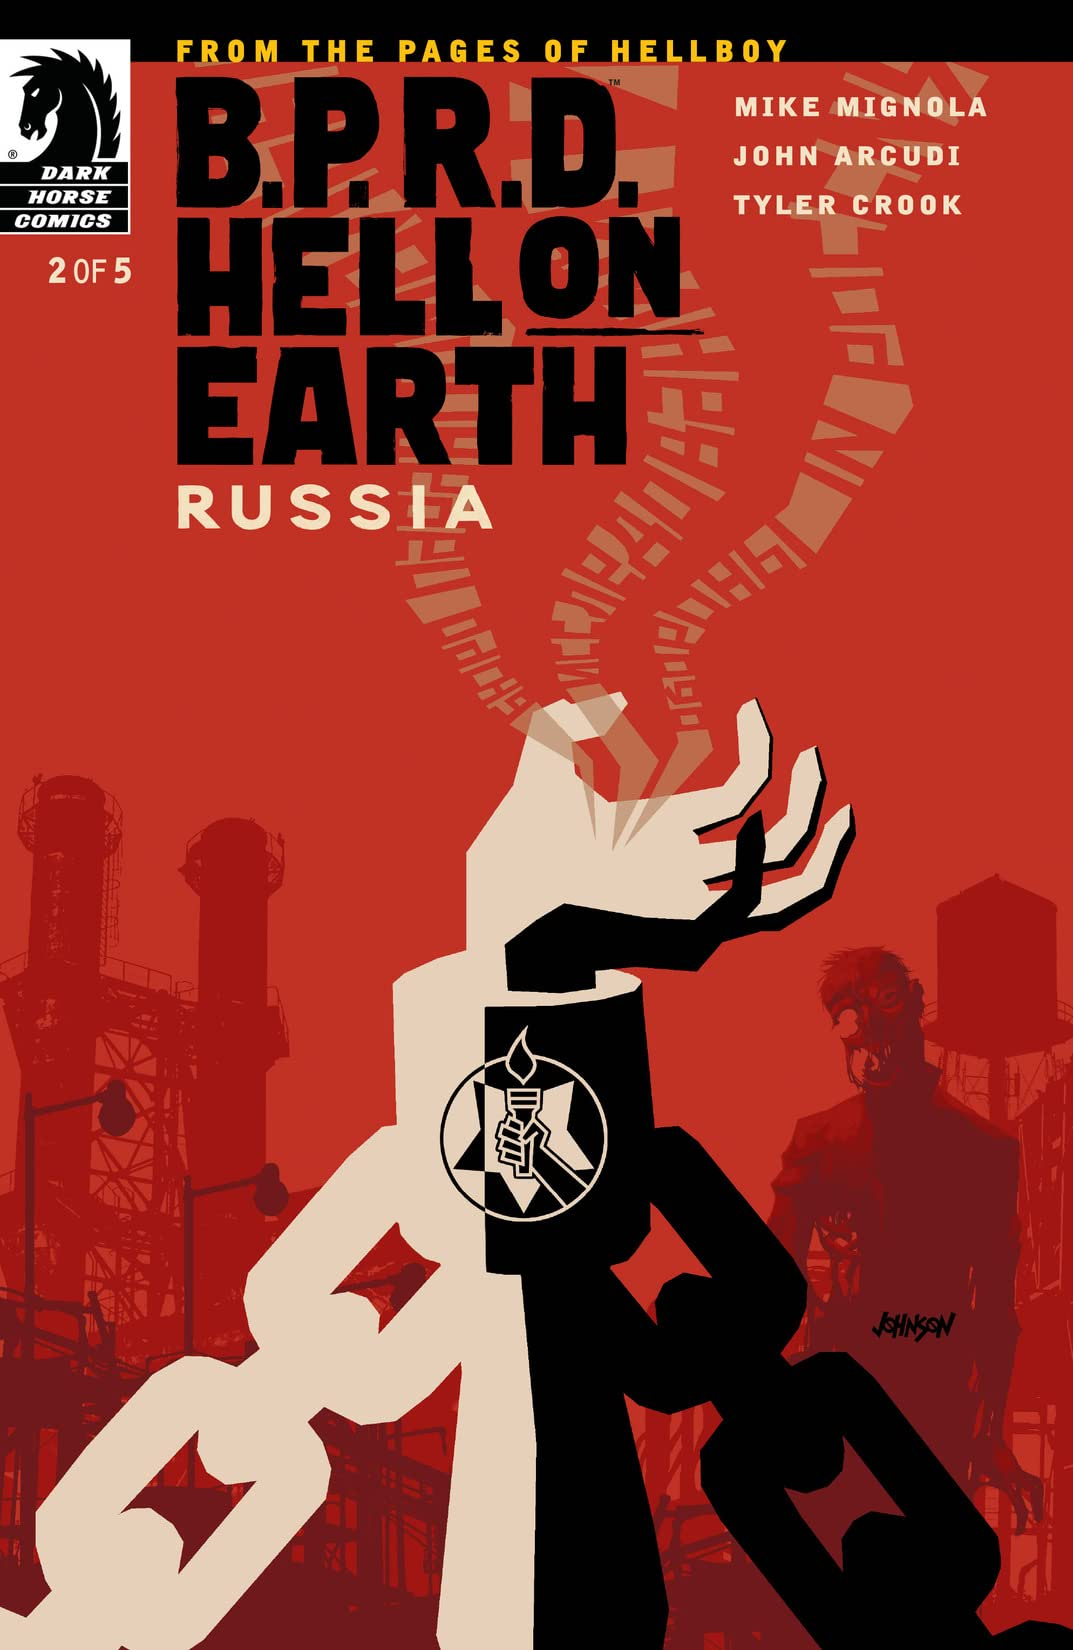 B.P.R.D.: Hell on Earth: Russia #2